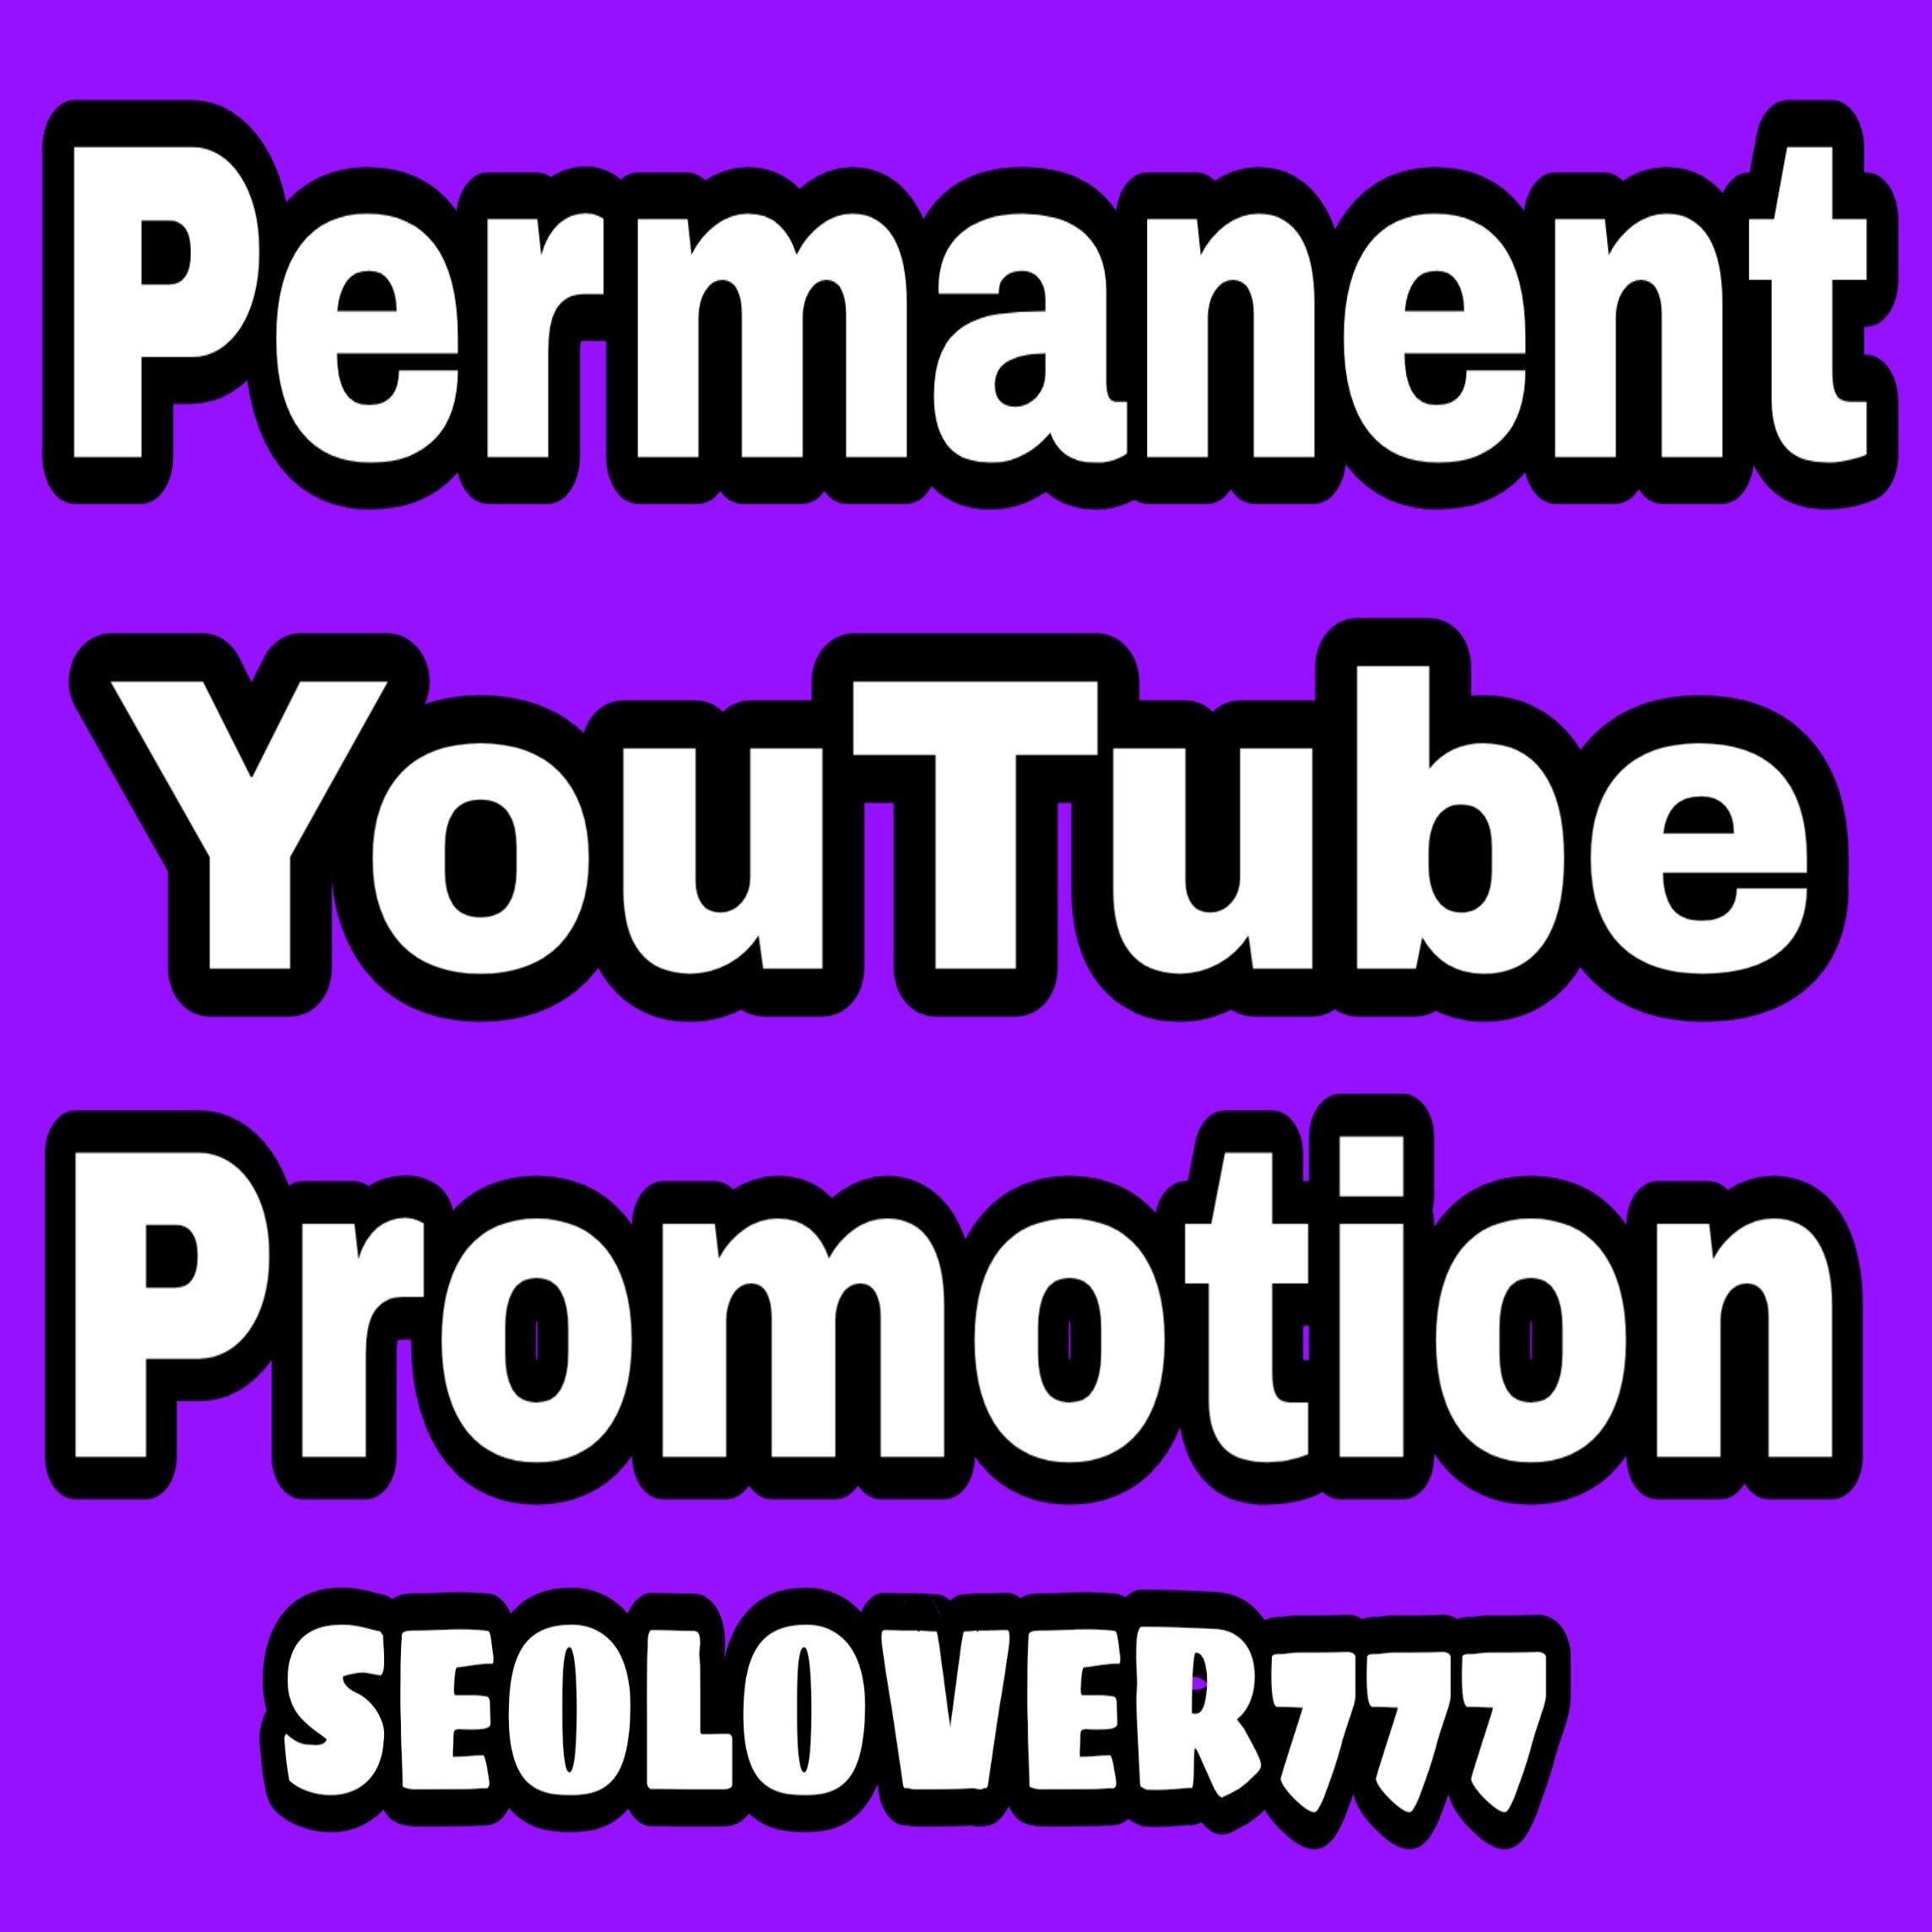 YouTube Promotion high quality & non drop via real users within 2-3 hours completed